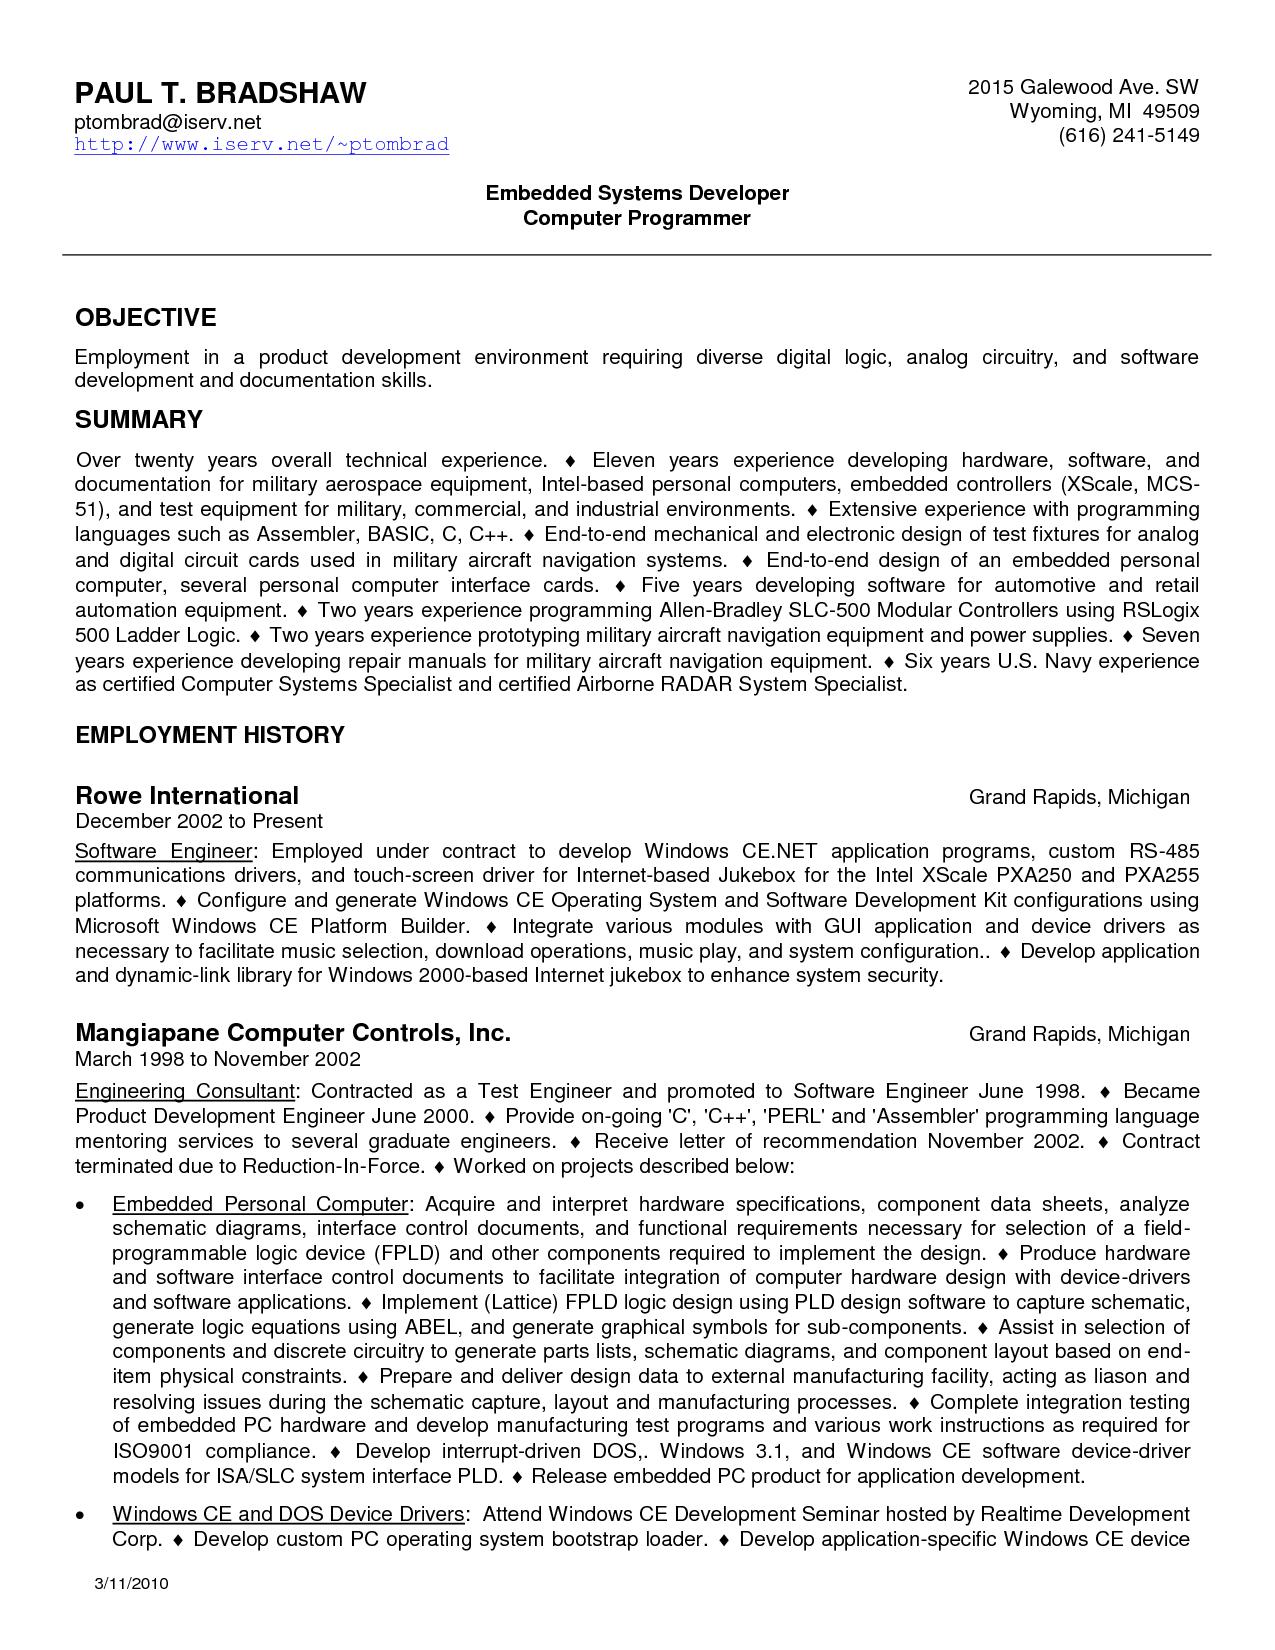 Generic resume template good objectives job objective samples